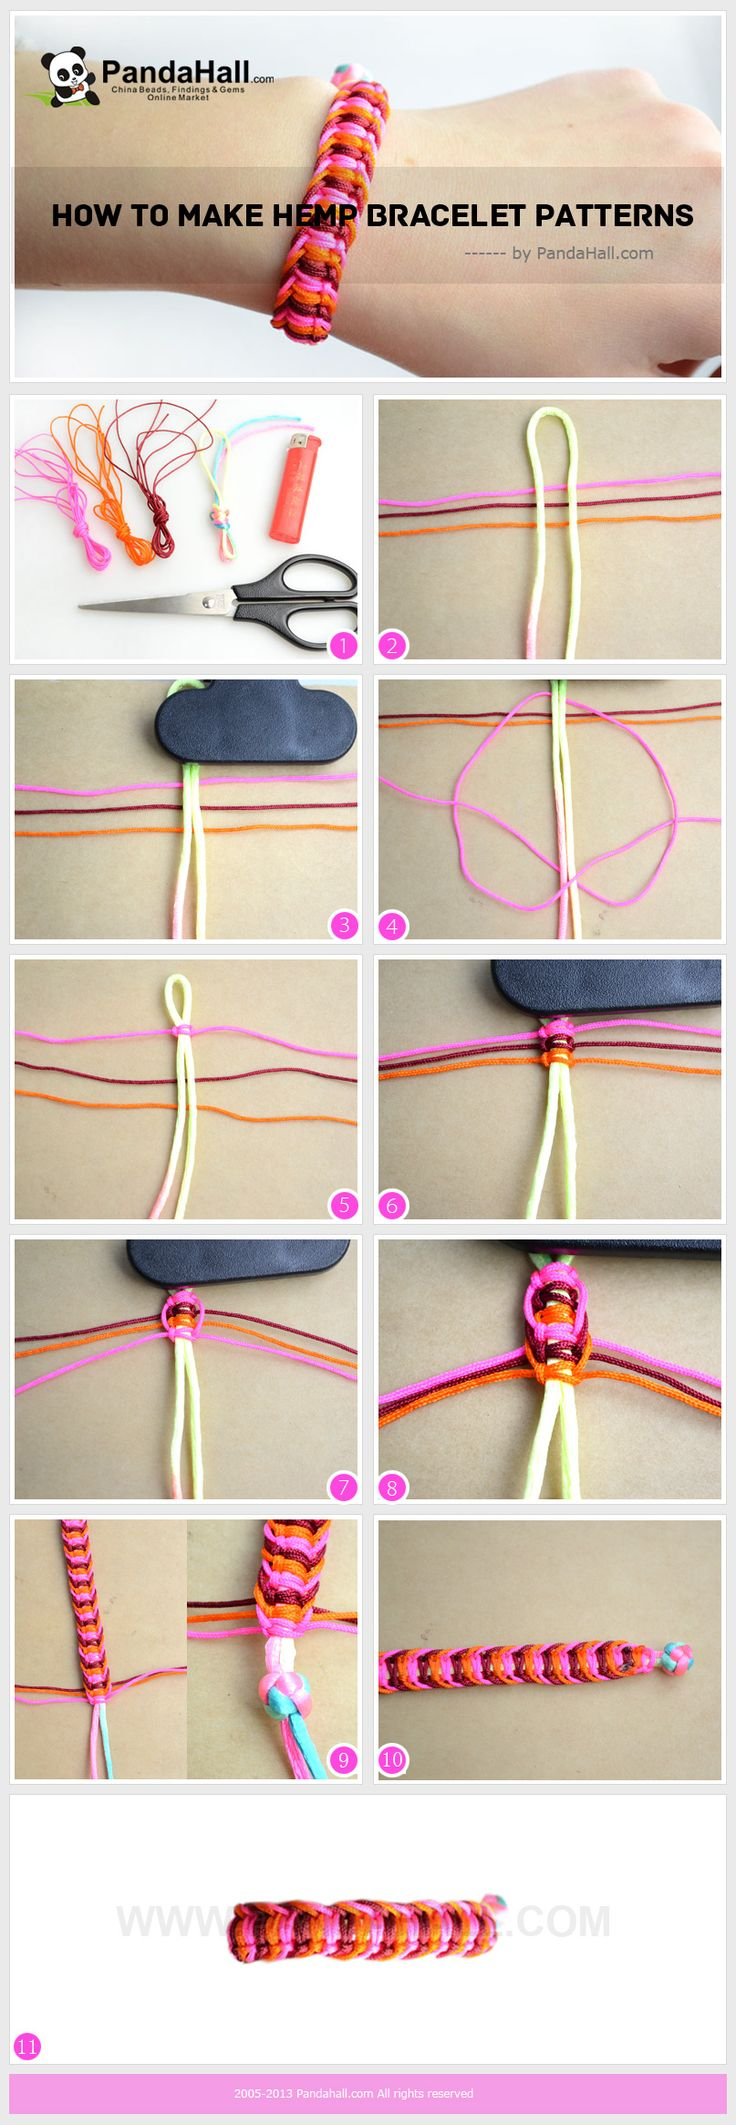 1135 best diy jewelry images on pinterest diy jewelry jewelry fashion can be bought or made 15 diy bracelets crafty ideas crafty b it solutioingenieria Images